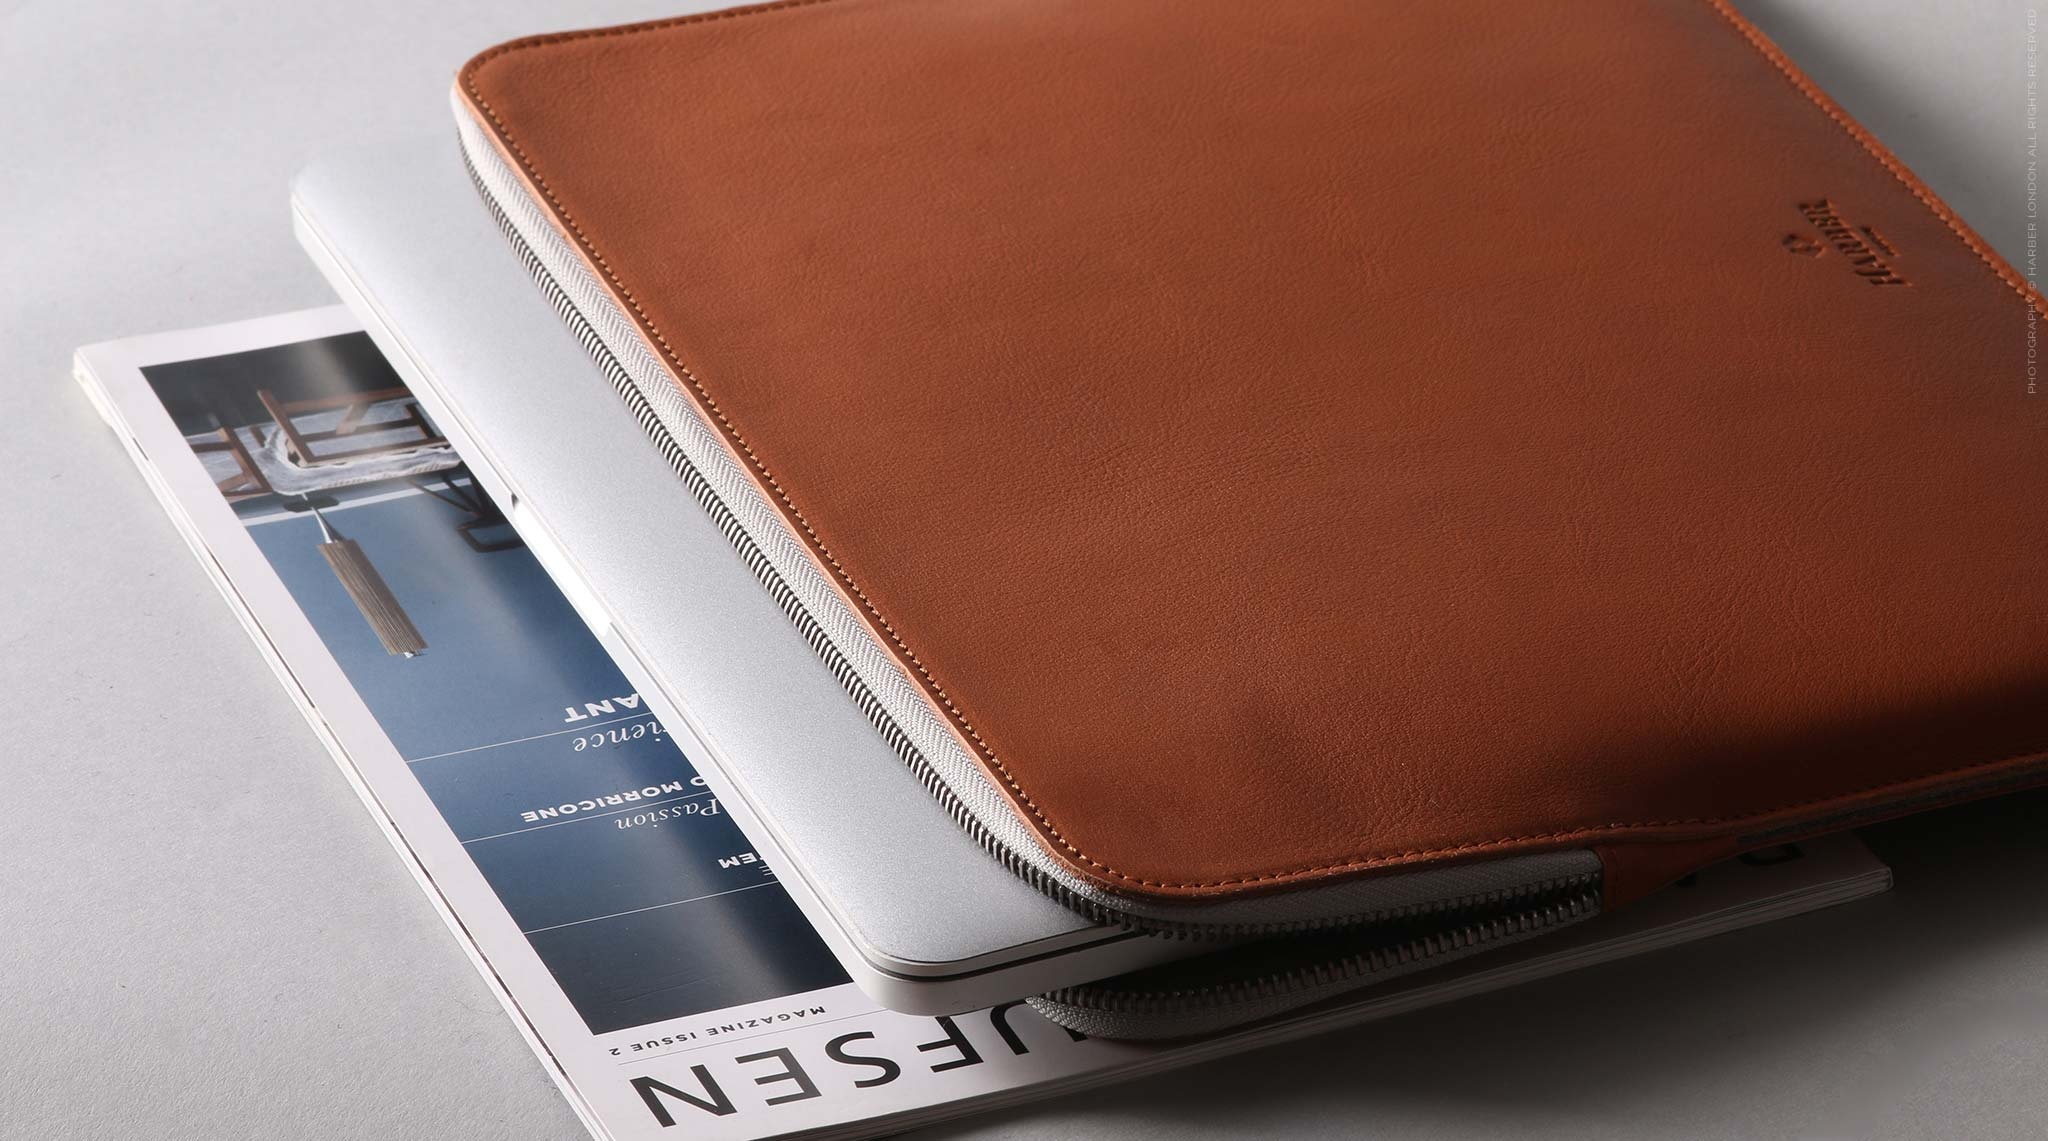 Slim Leather Folio Macbook Case S7